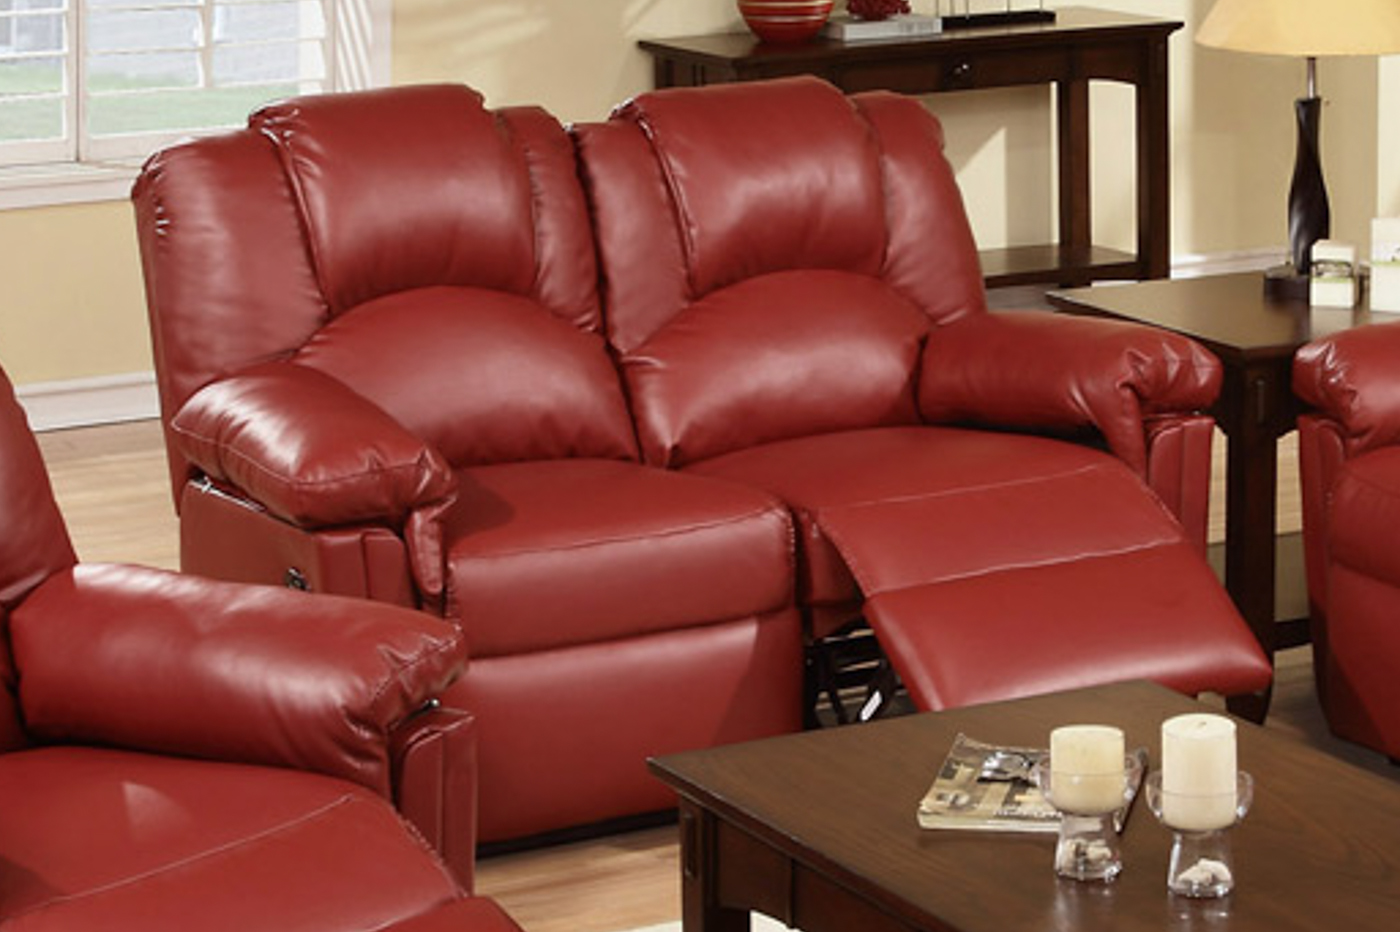 Red Leather Reclining Loveseat Steal A Sofa Furniture Outlet Los Angeles Ca